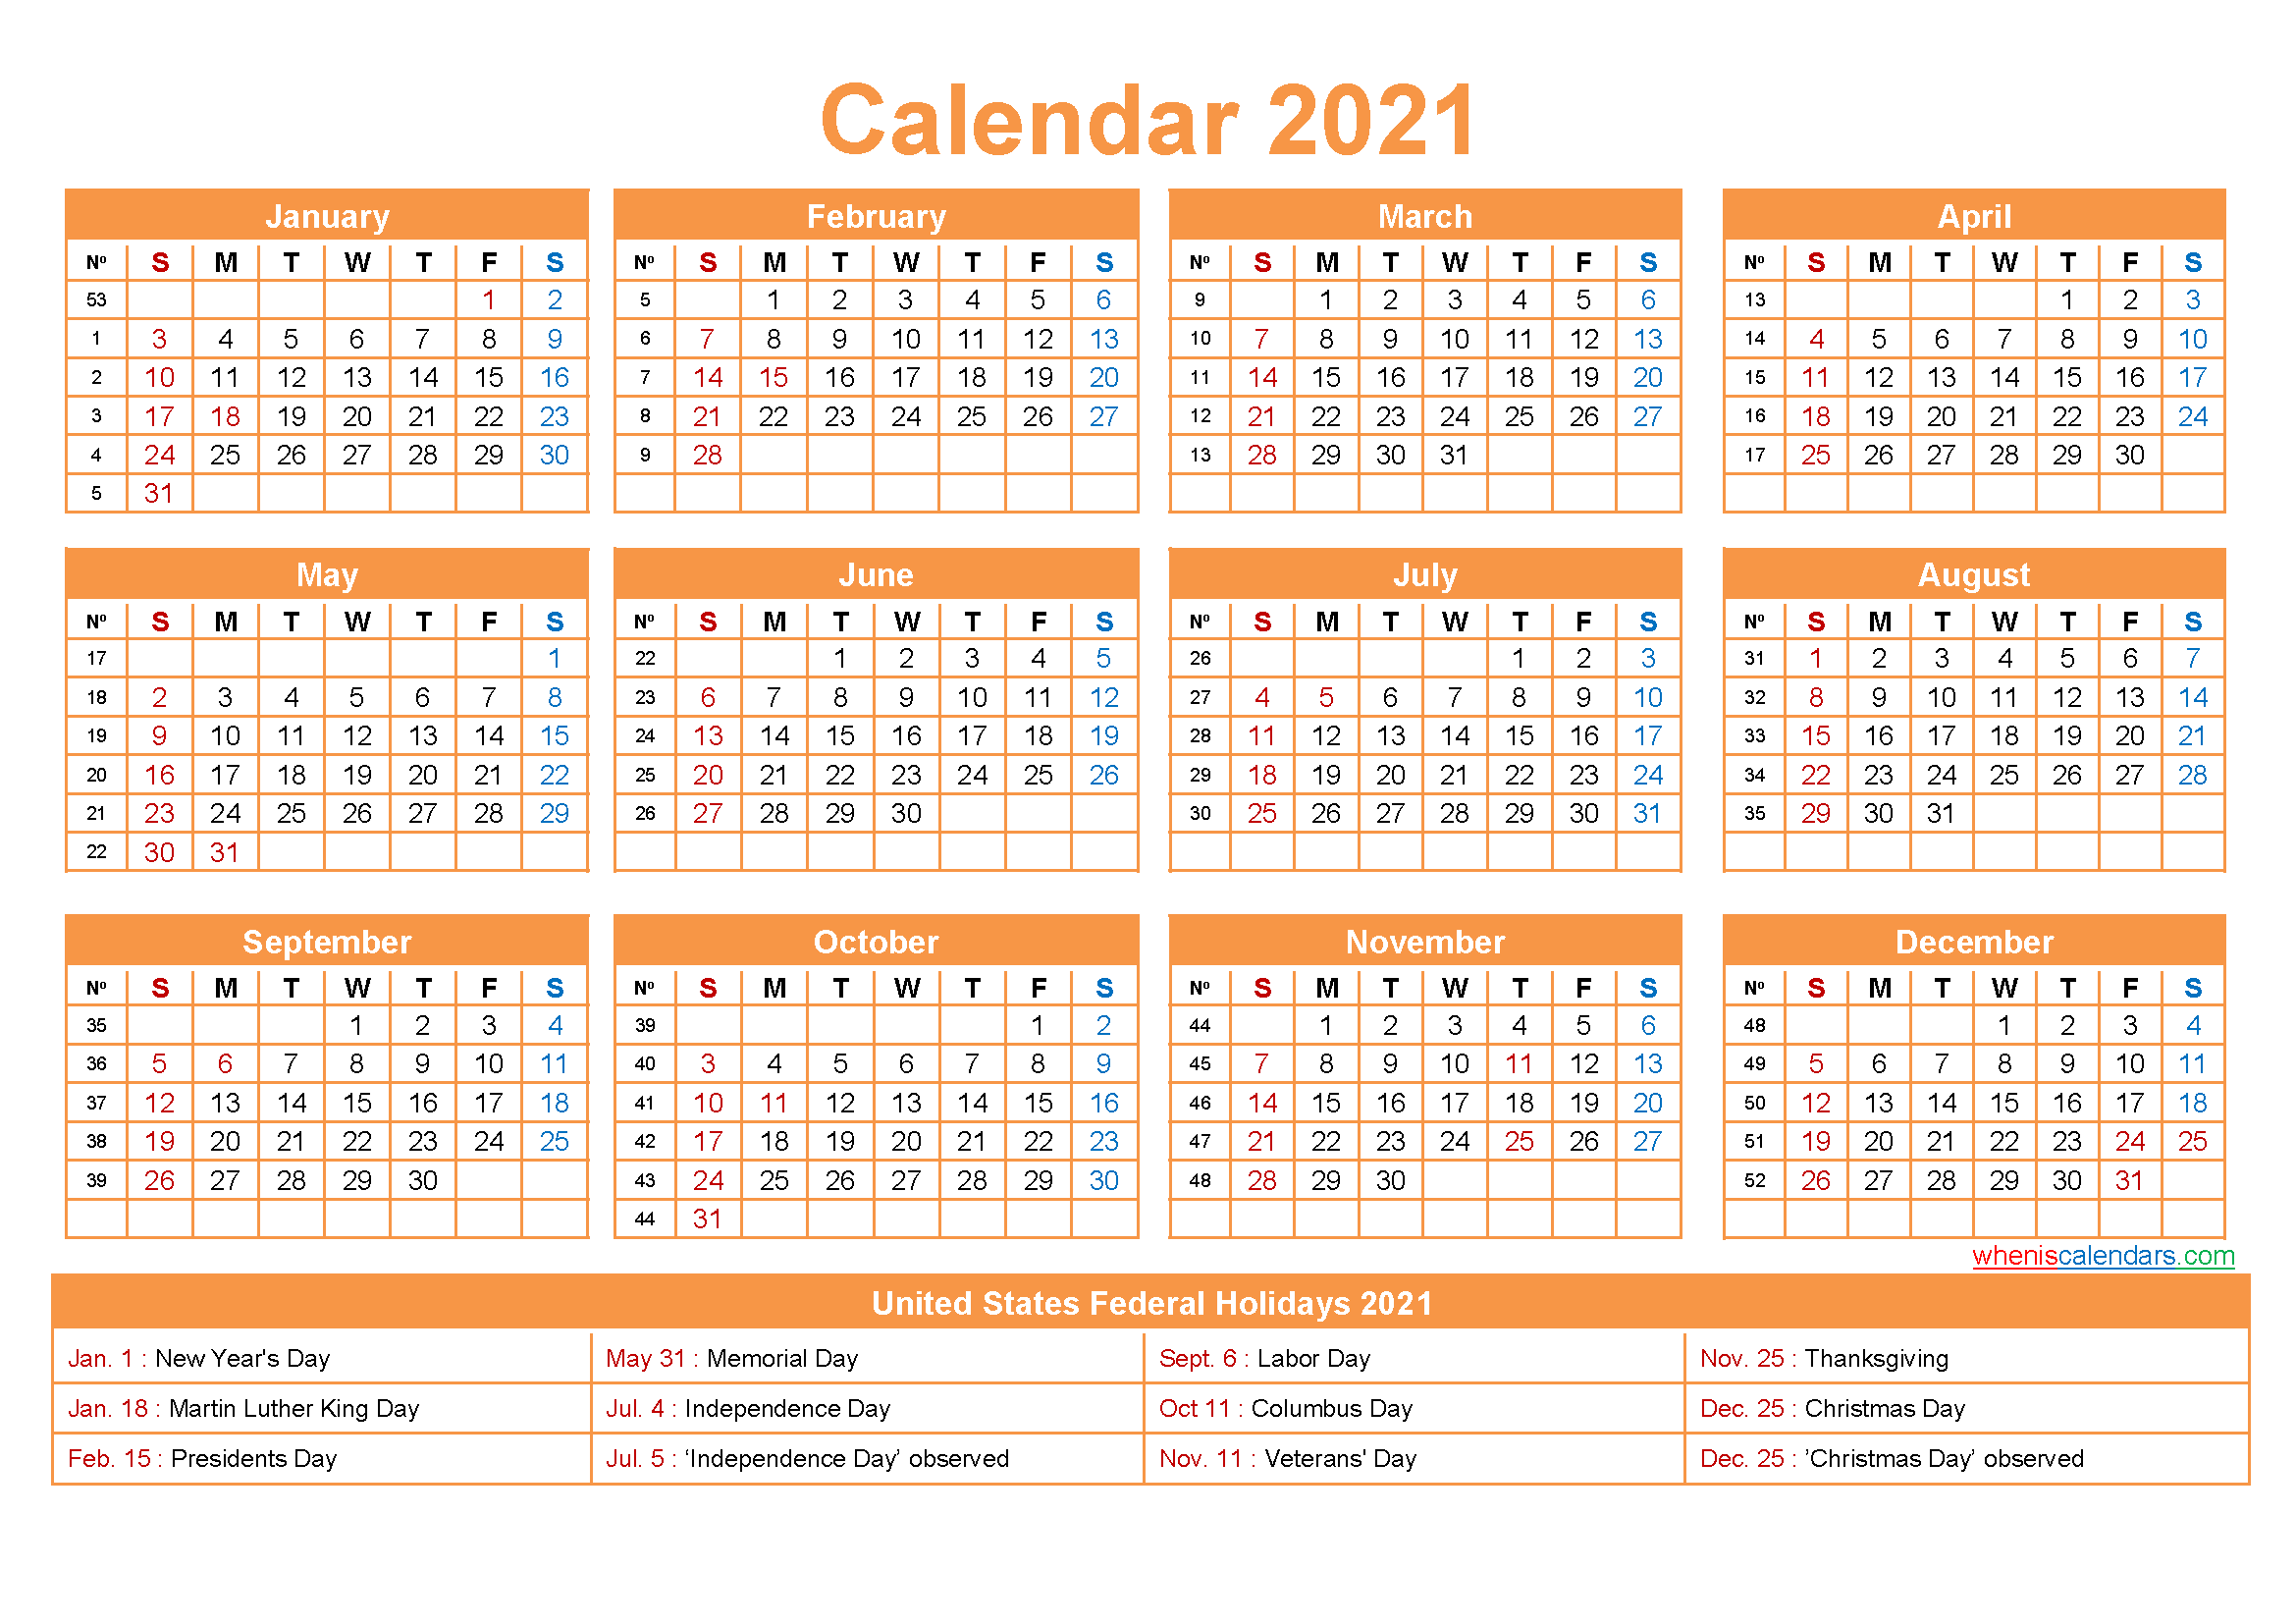 Maxine Desk Calendar 2021 with Holidays Printable